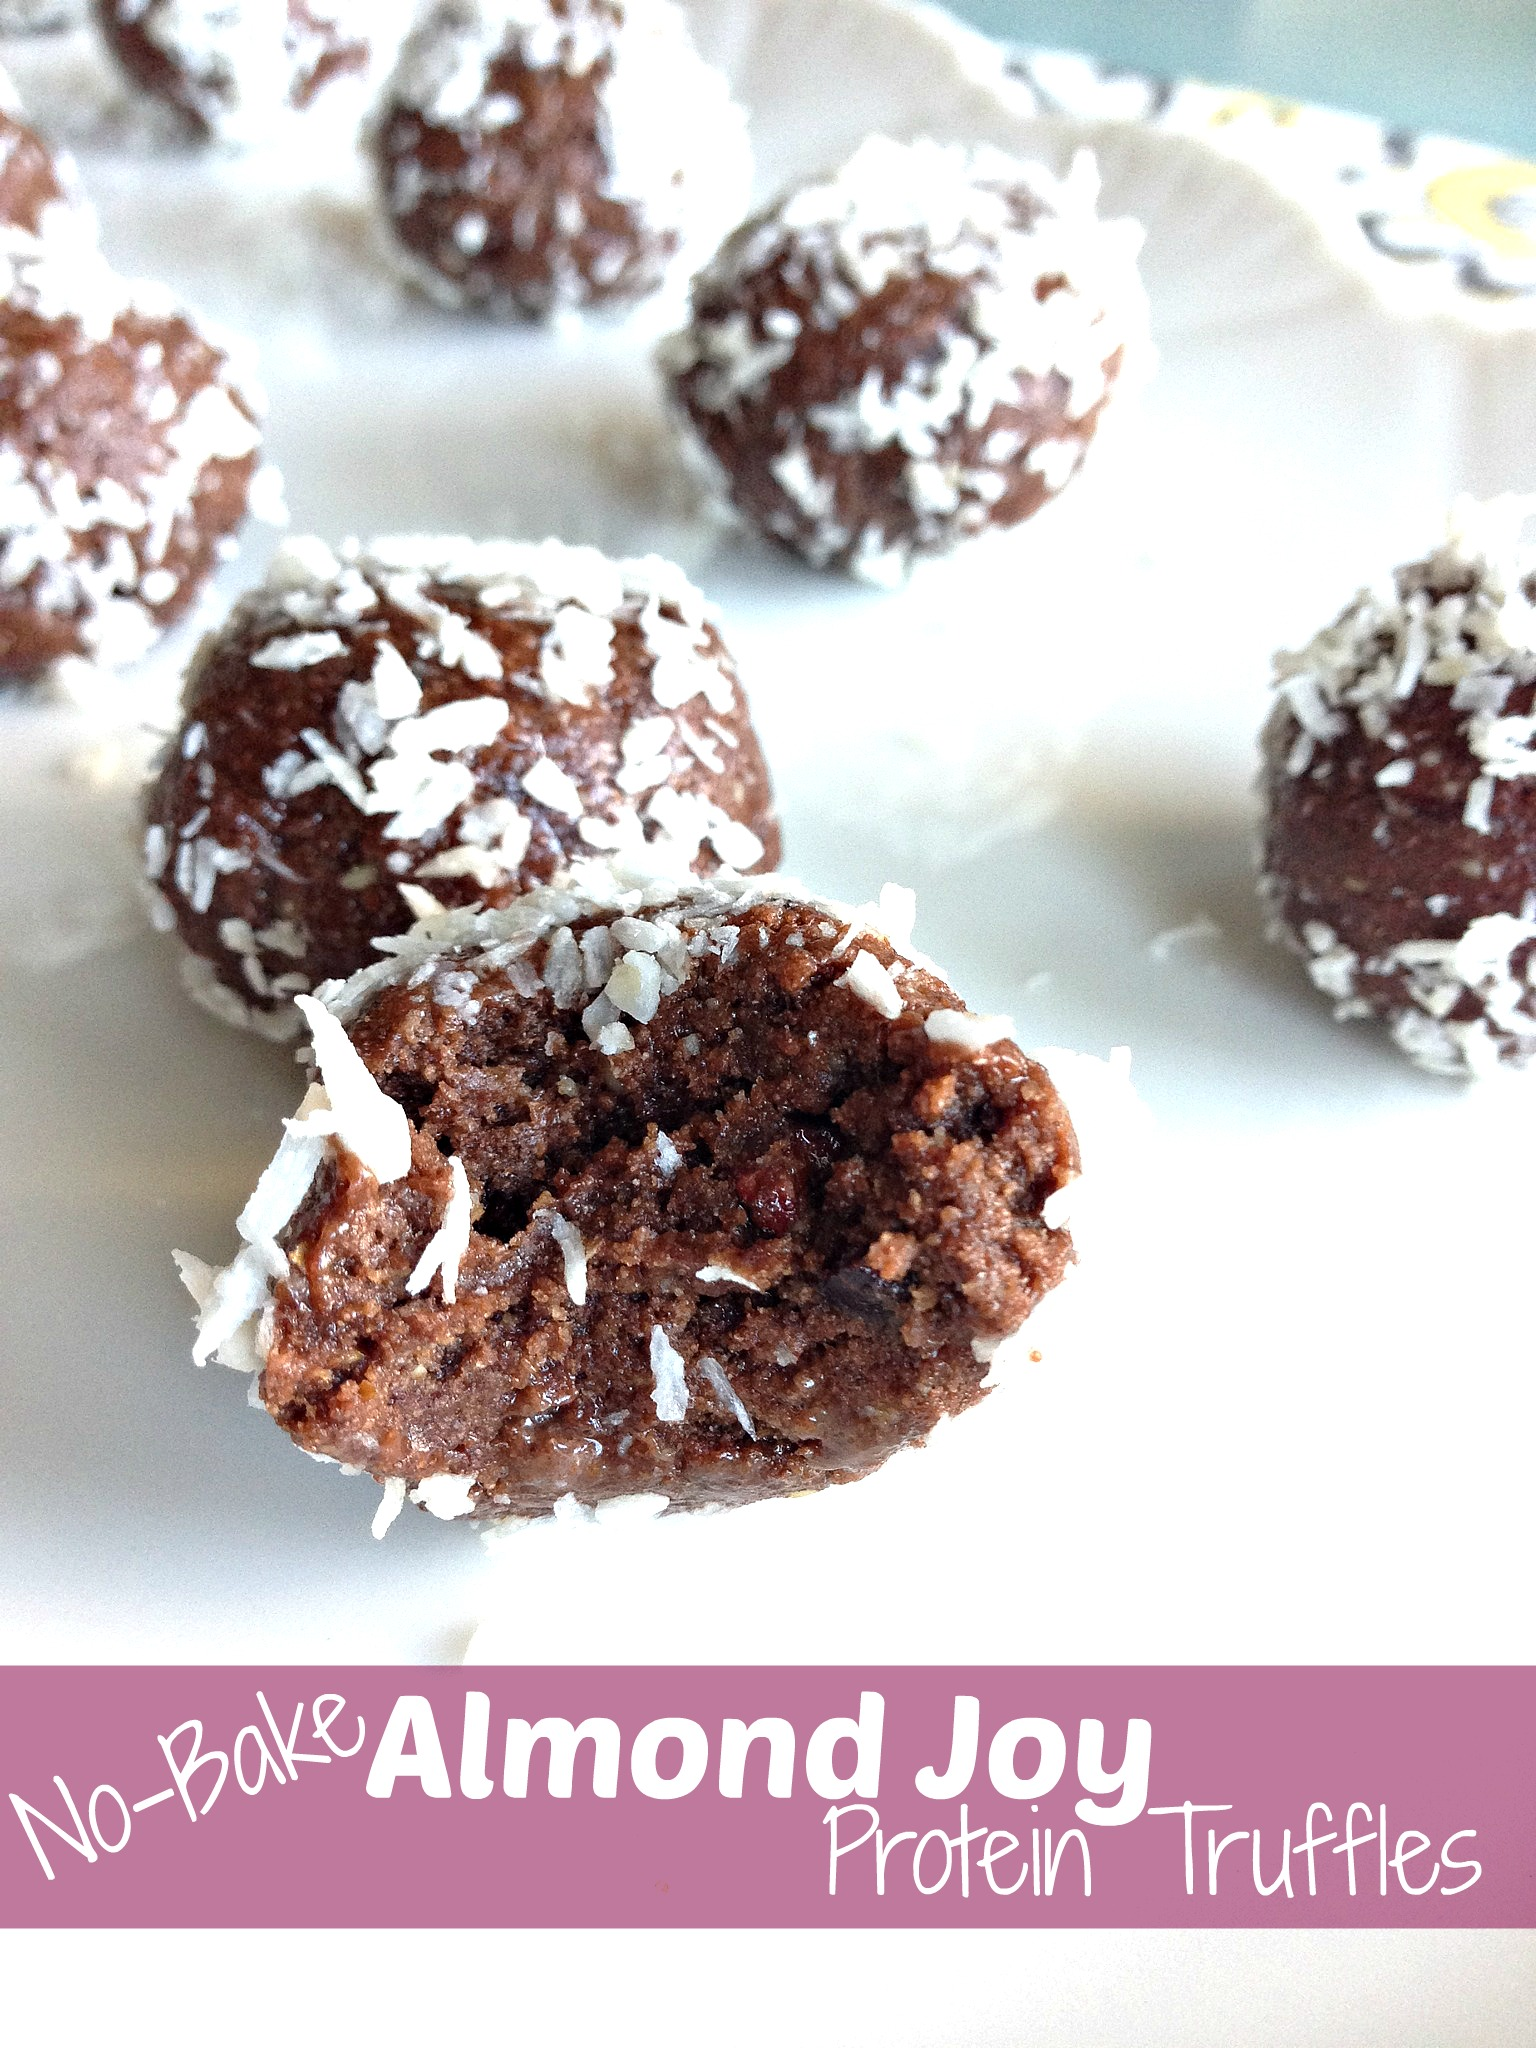 No-Bake Almond Joy Protein Truffles